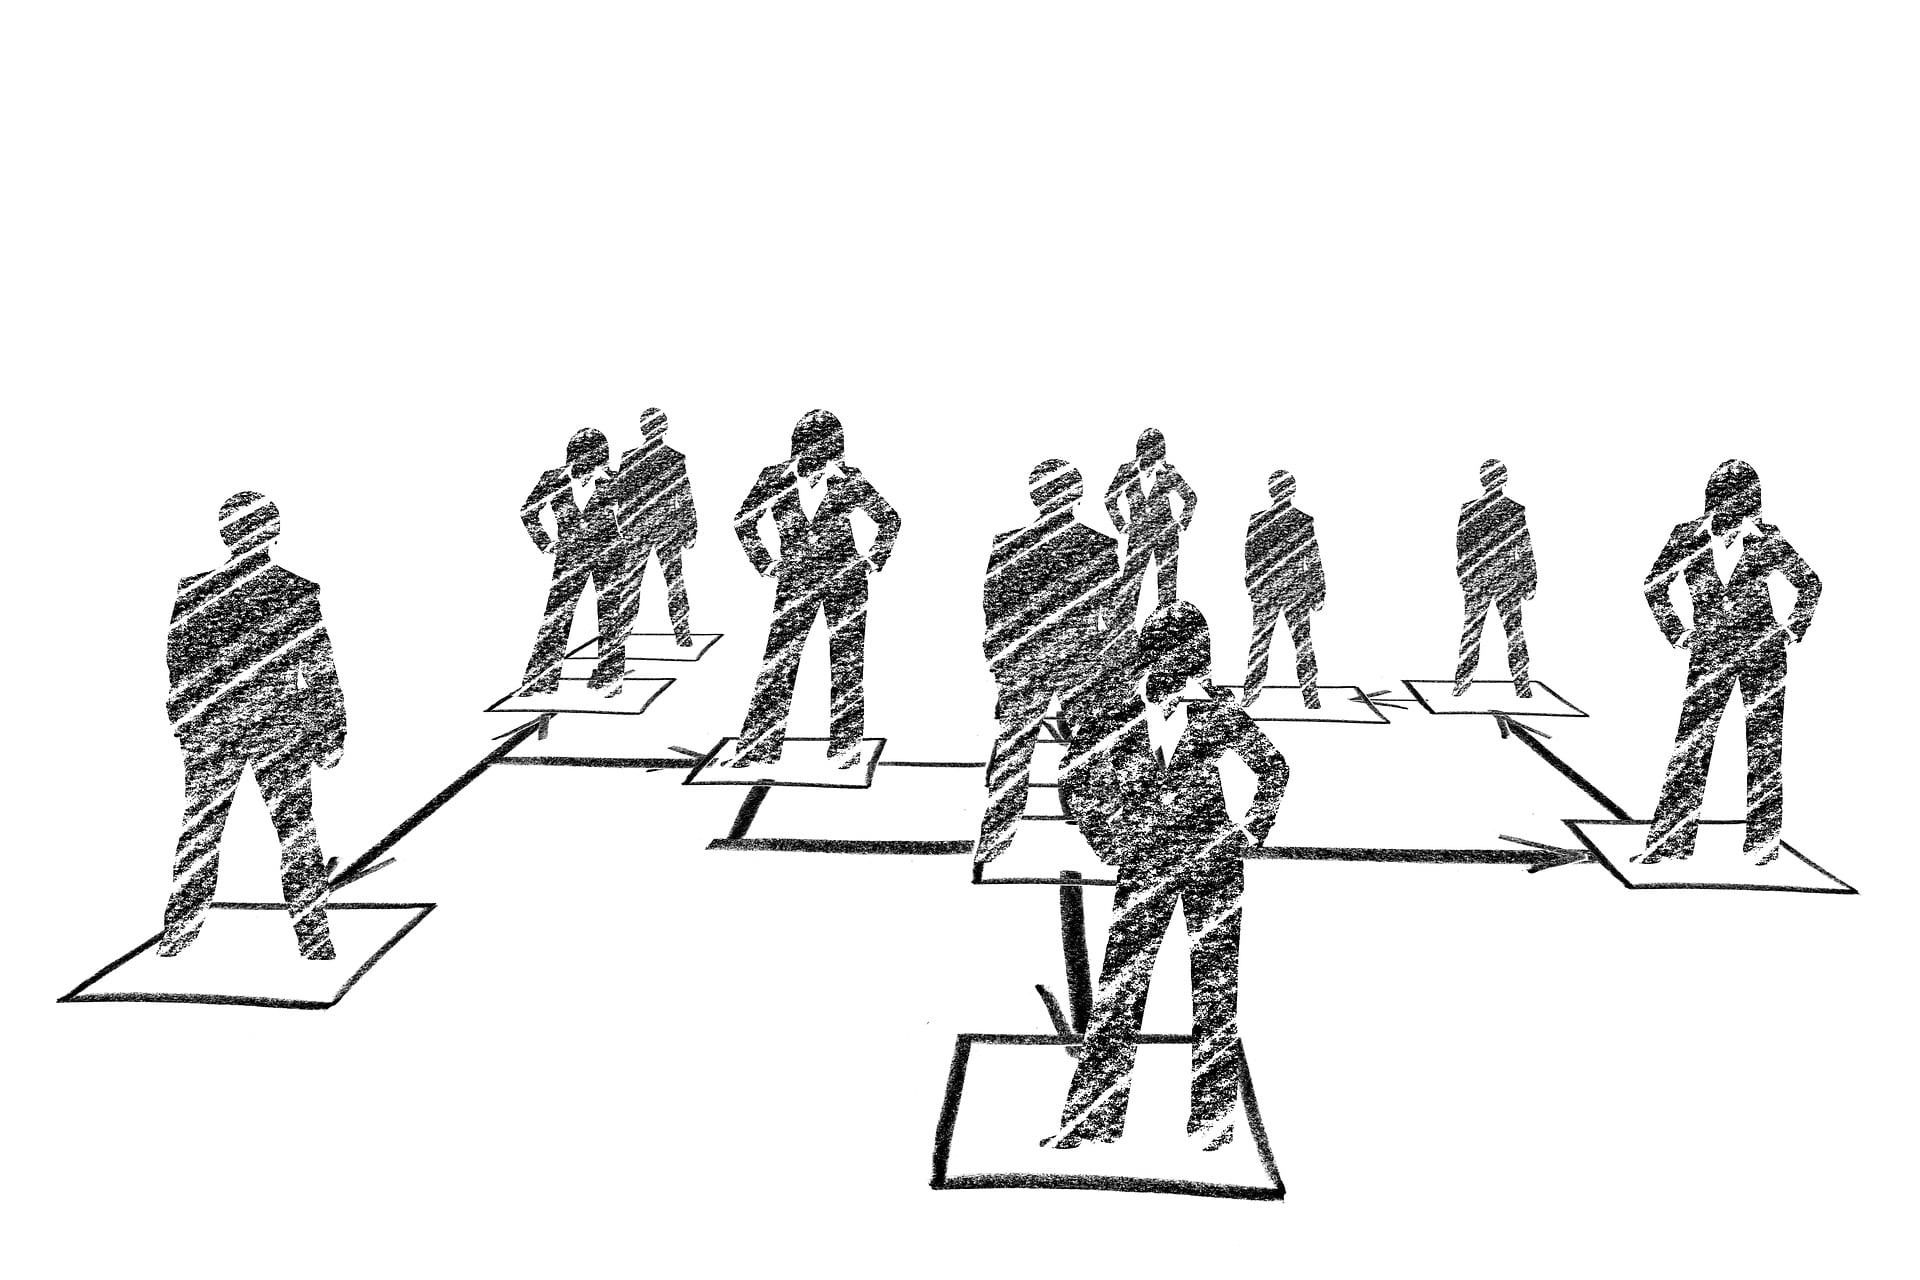 Pencil drawing of business people silhouettes standing on drawn boxes